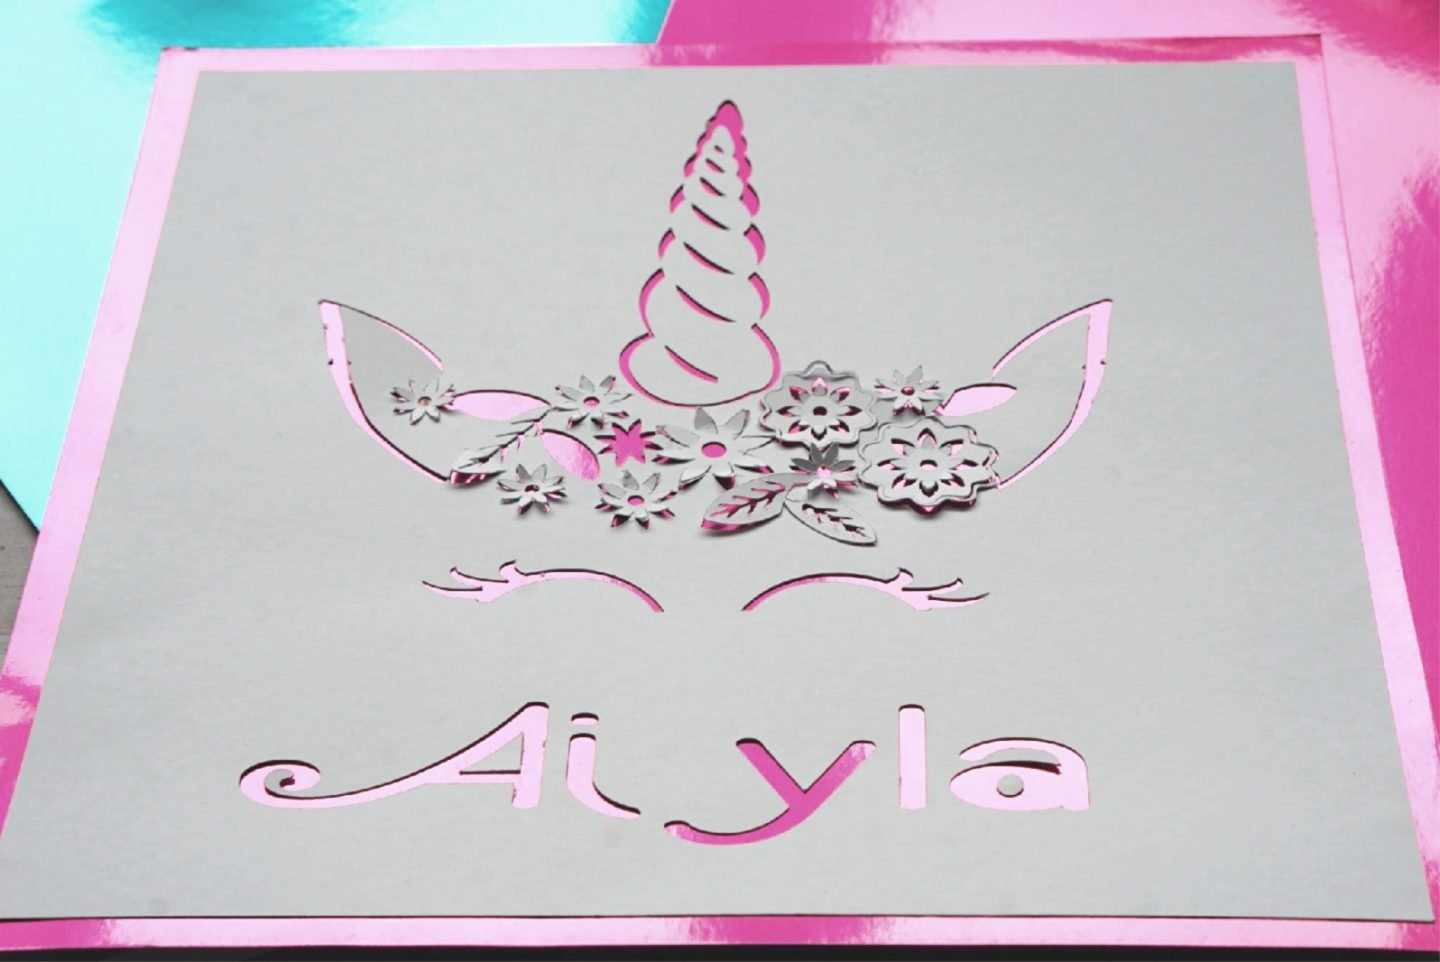 Making a Unicorn picrture Paper Cut With The Cricut Machine www.extraordinarychaos.com